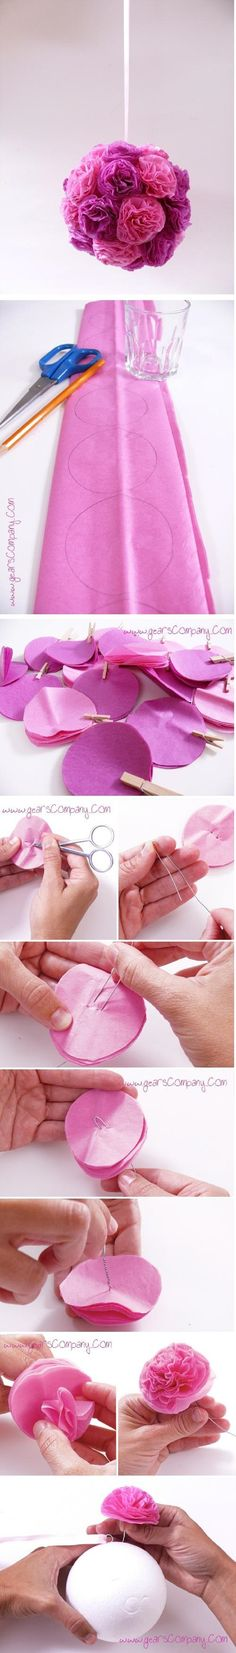 DIY Paper Flower Tutorial - 15 Whimsical DIY Party Decoration Tutorials | GleamItUp More